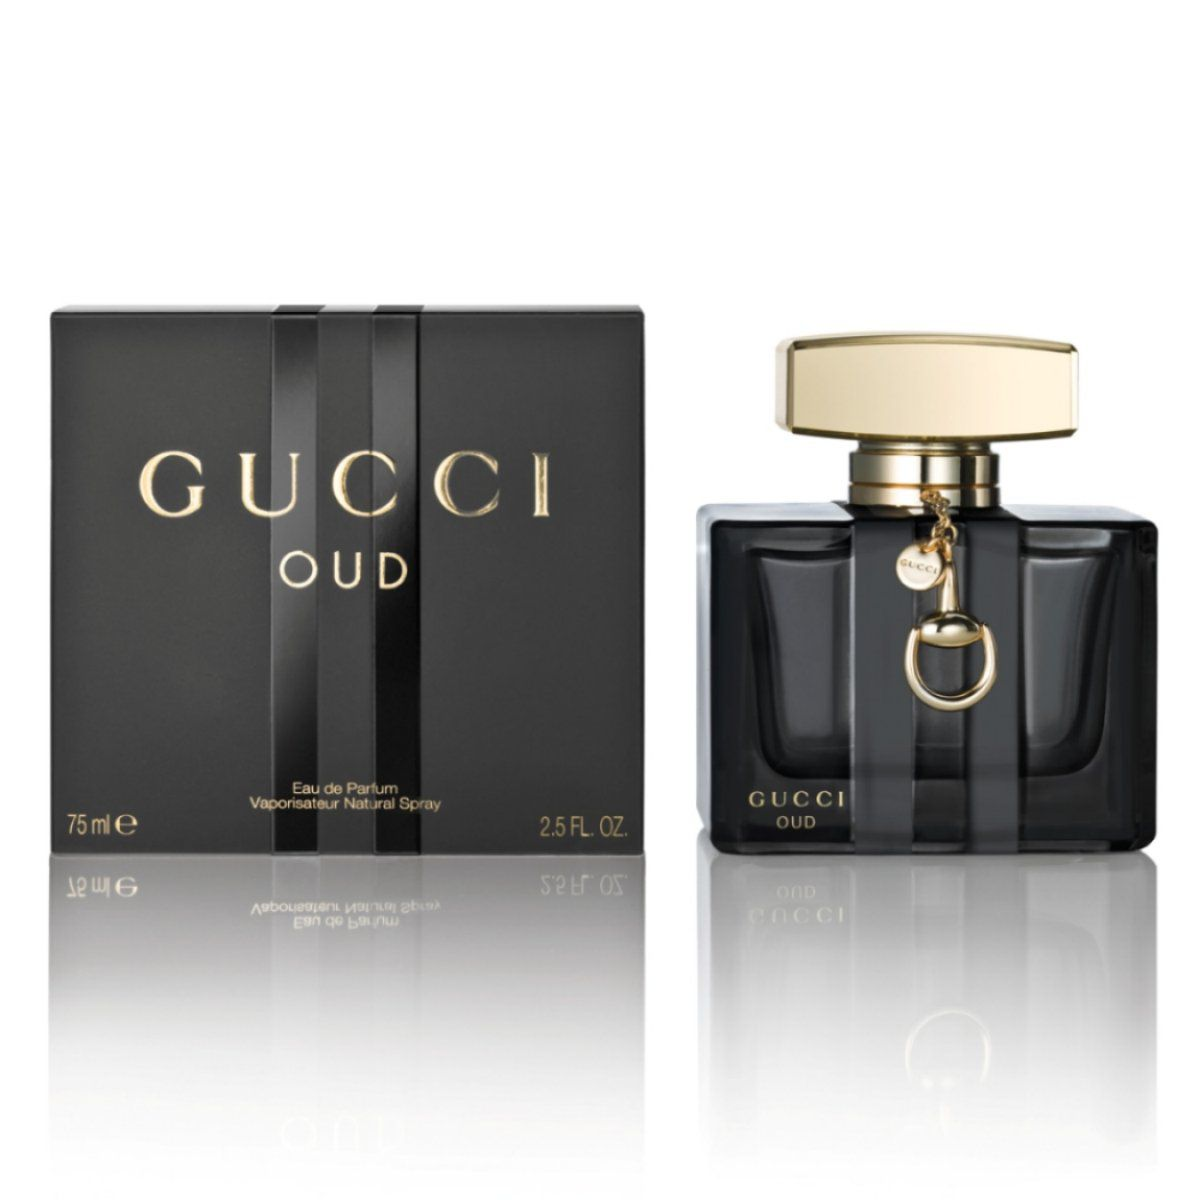 63691ae13 Gucci Fragse OUD 75ML For Men: Buy Online at Best Prices in India - Snapdeal